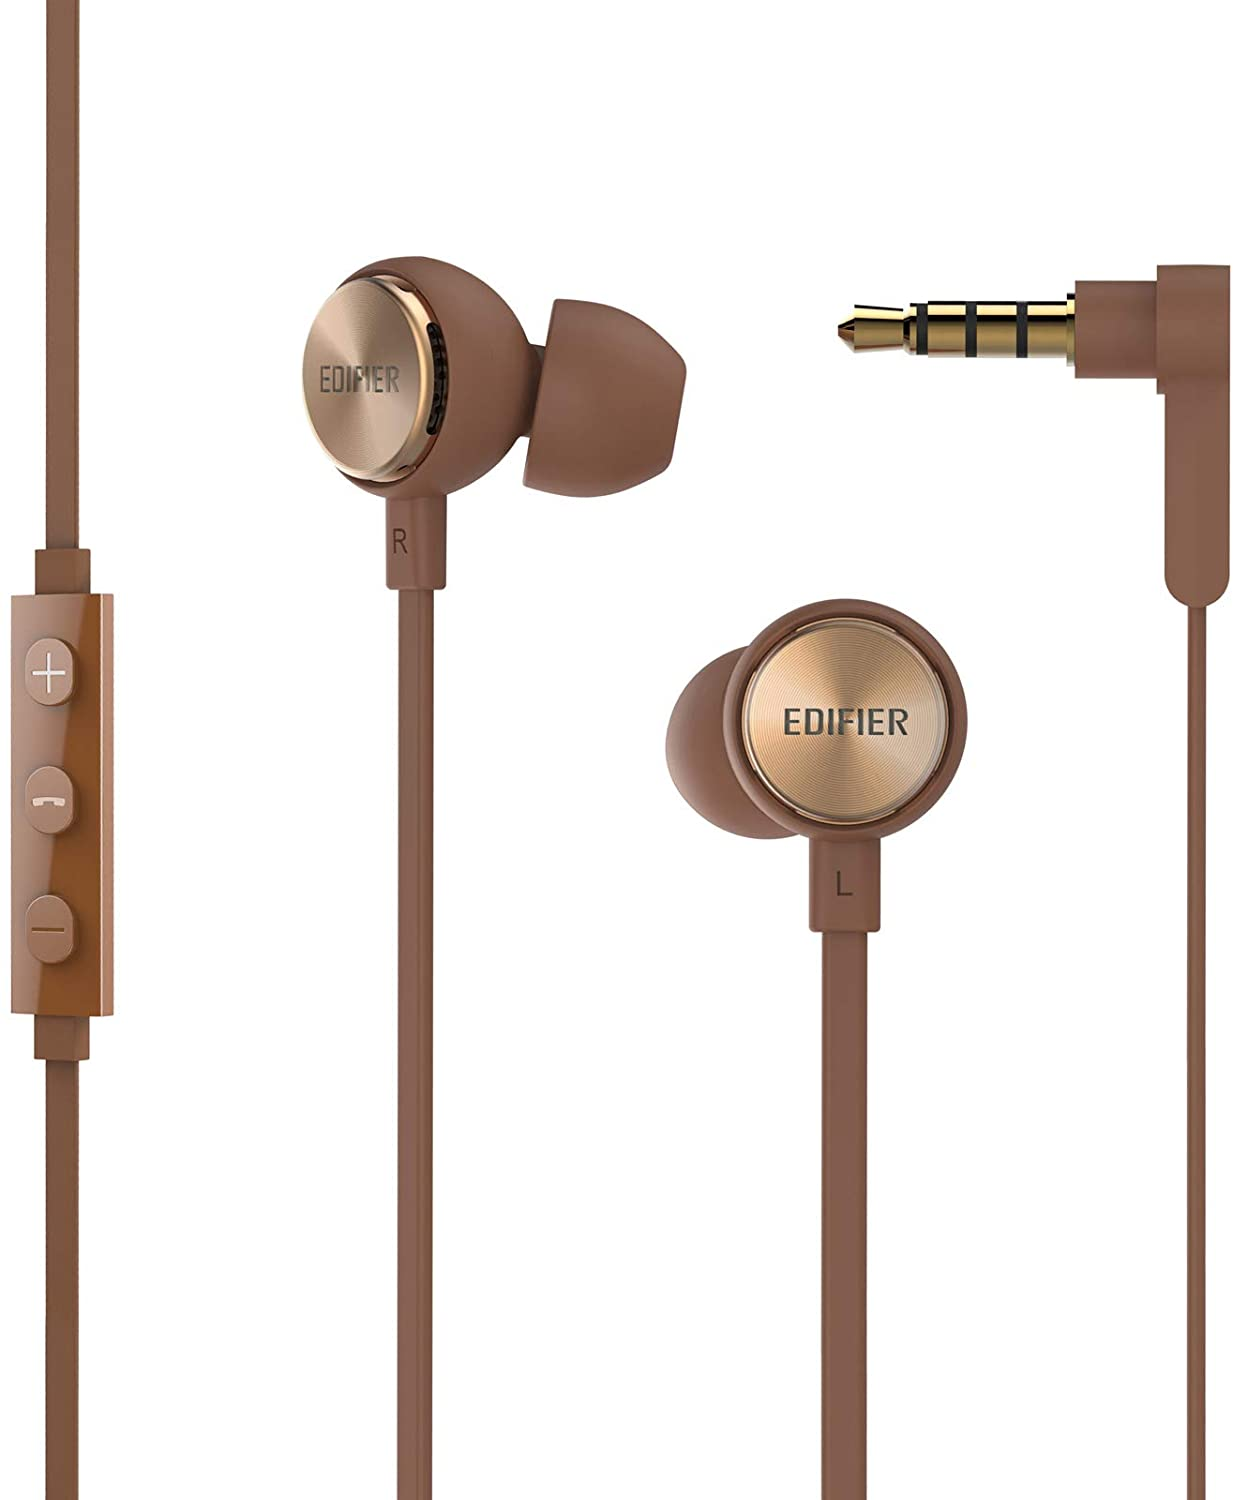 Edifier P293 Plus Computer Headset in-Ear Earphones Inline Volume Playback Controls Flat L Shaped Cable Comfortable Eartips - Brown